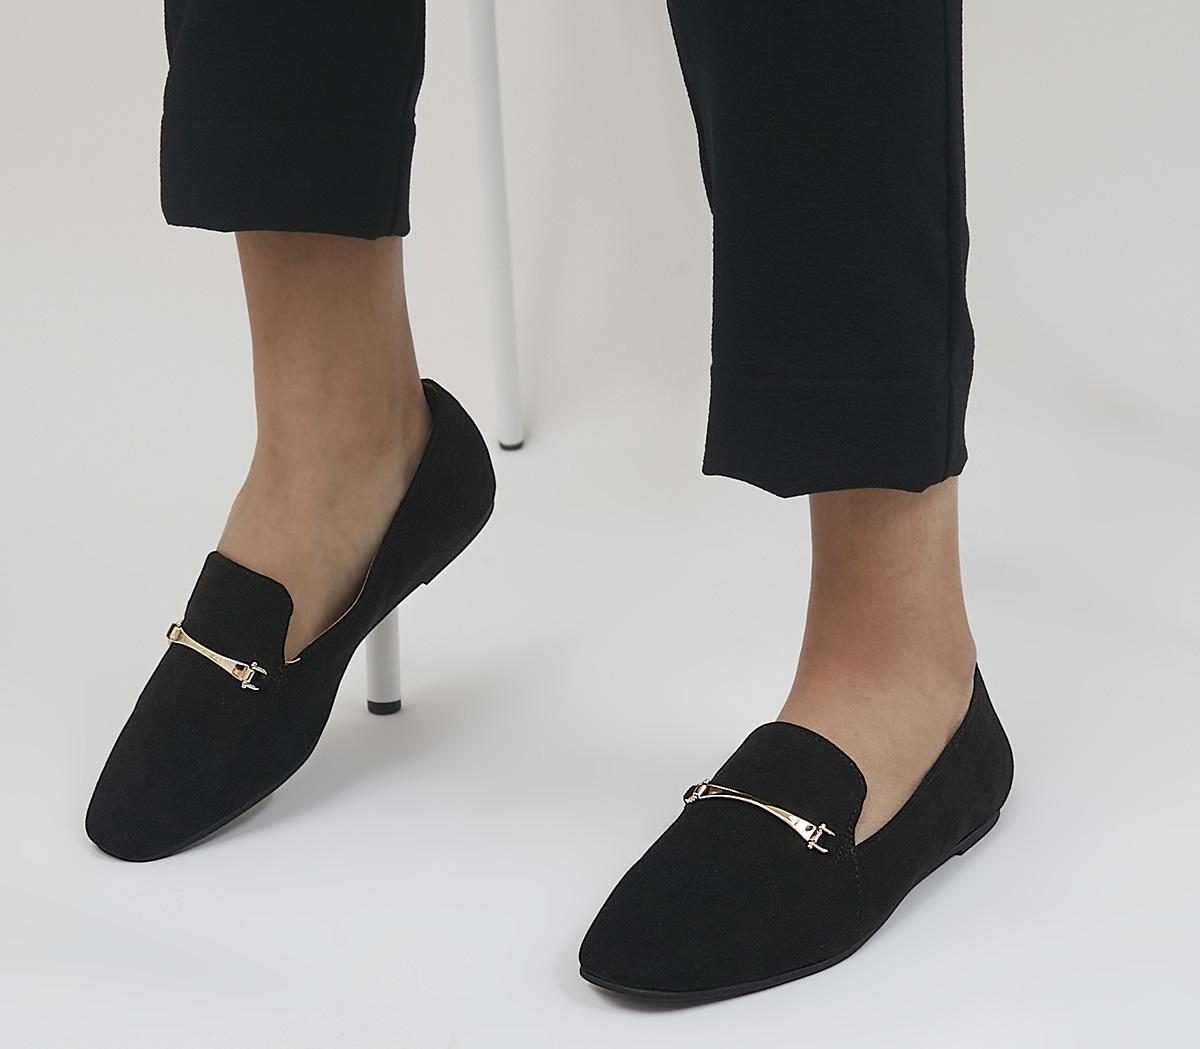 Frilled Feature Trim Slippers